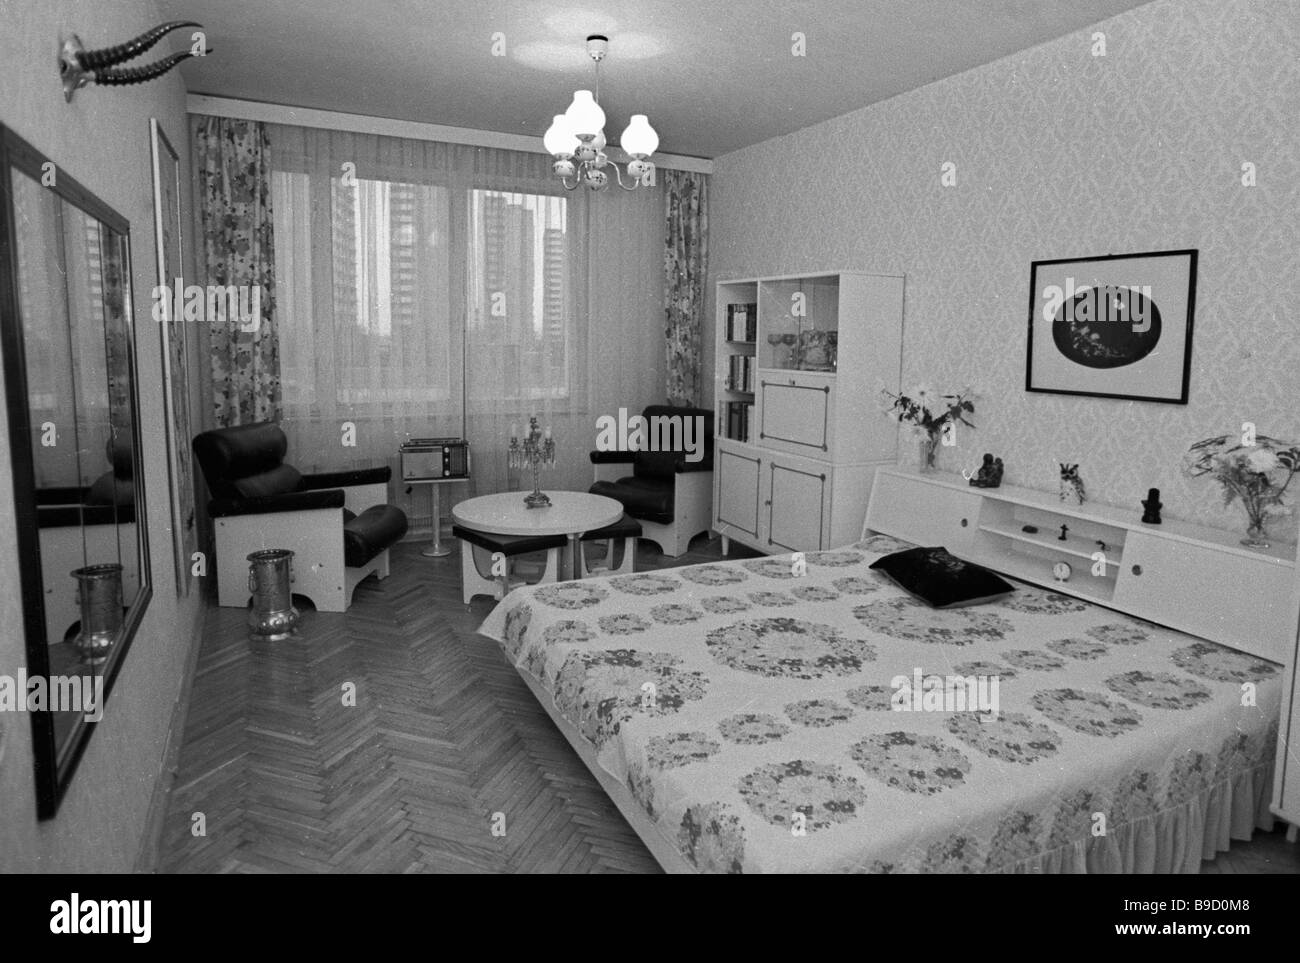 Bedroom in a new cooperative house in Orekhovo Borisovo neighborhood Moscow - Stock Image